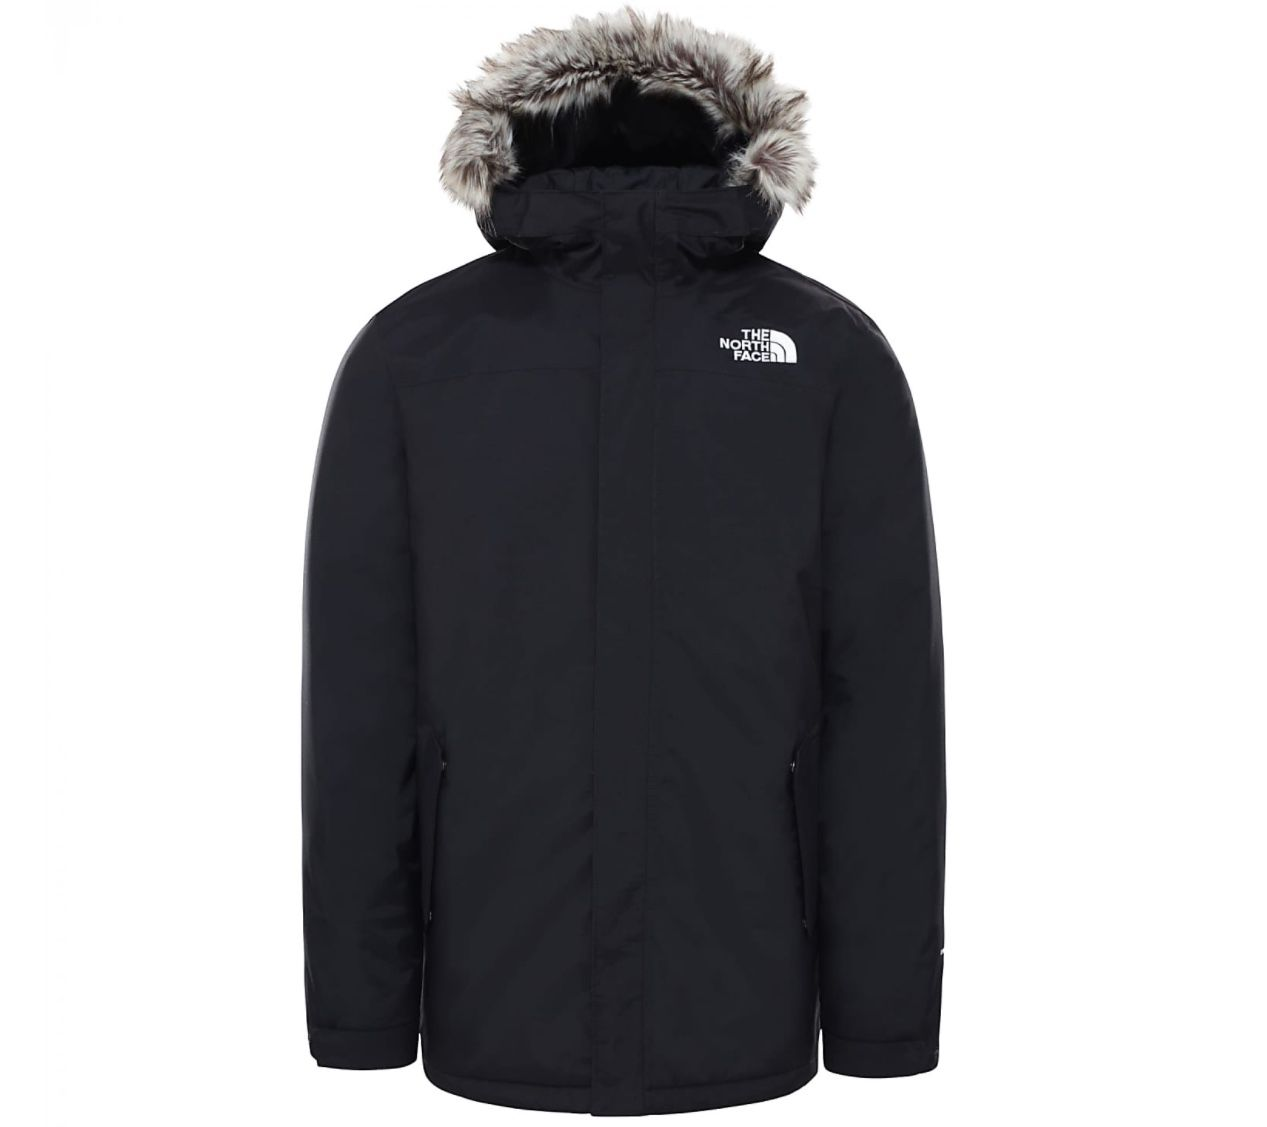 The North Face Zaneck Herren Parka für 163,77€ (statt 230€)